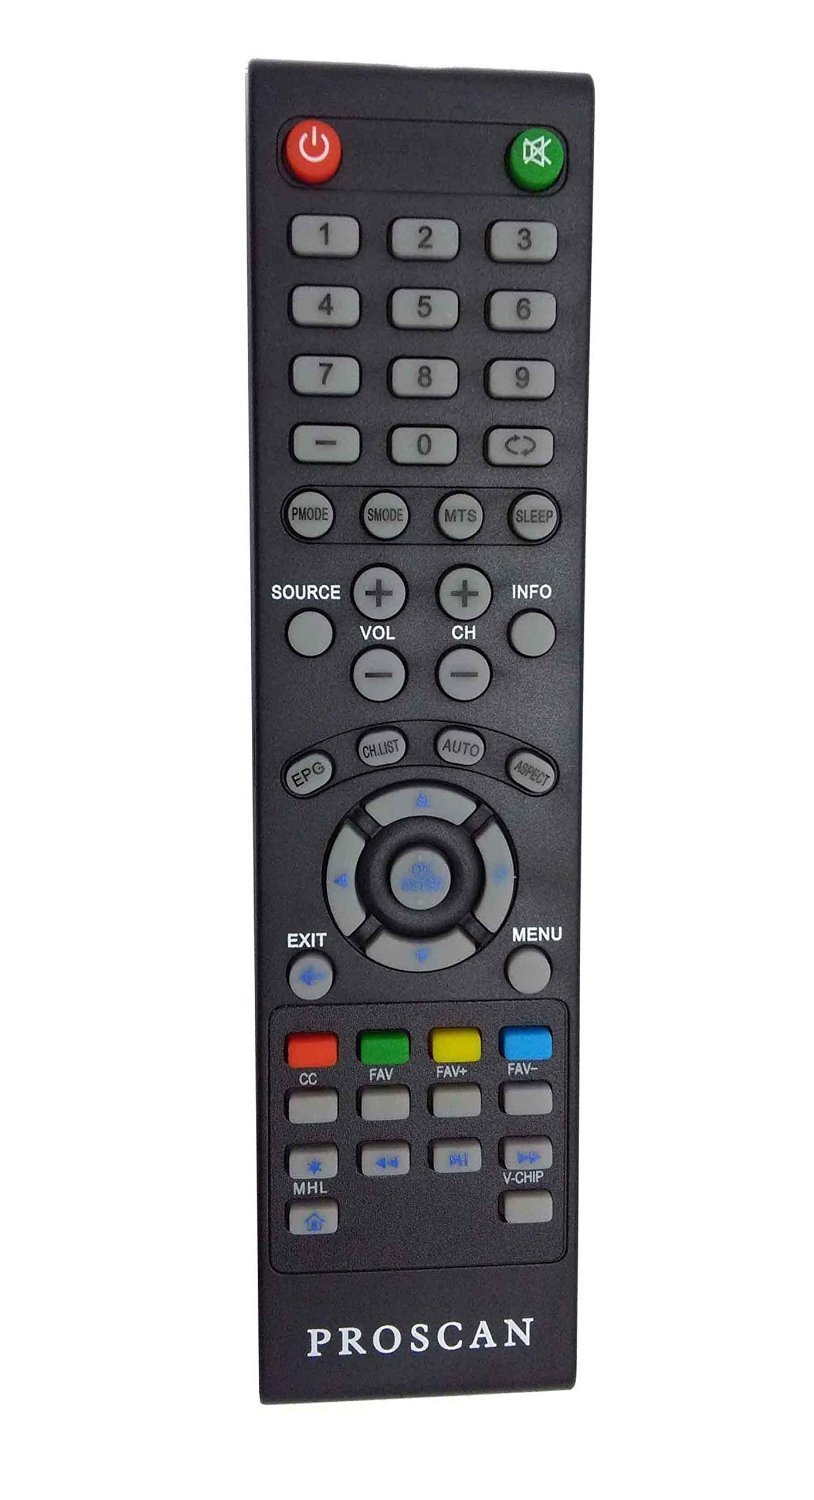 PROSCAN Remote Control With MHL Function for PROSCAN LCD LED TV (+MHL)